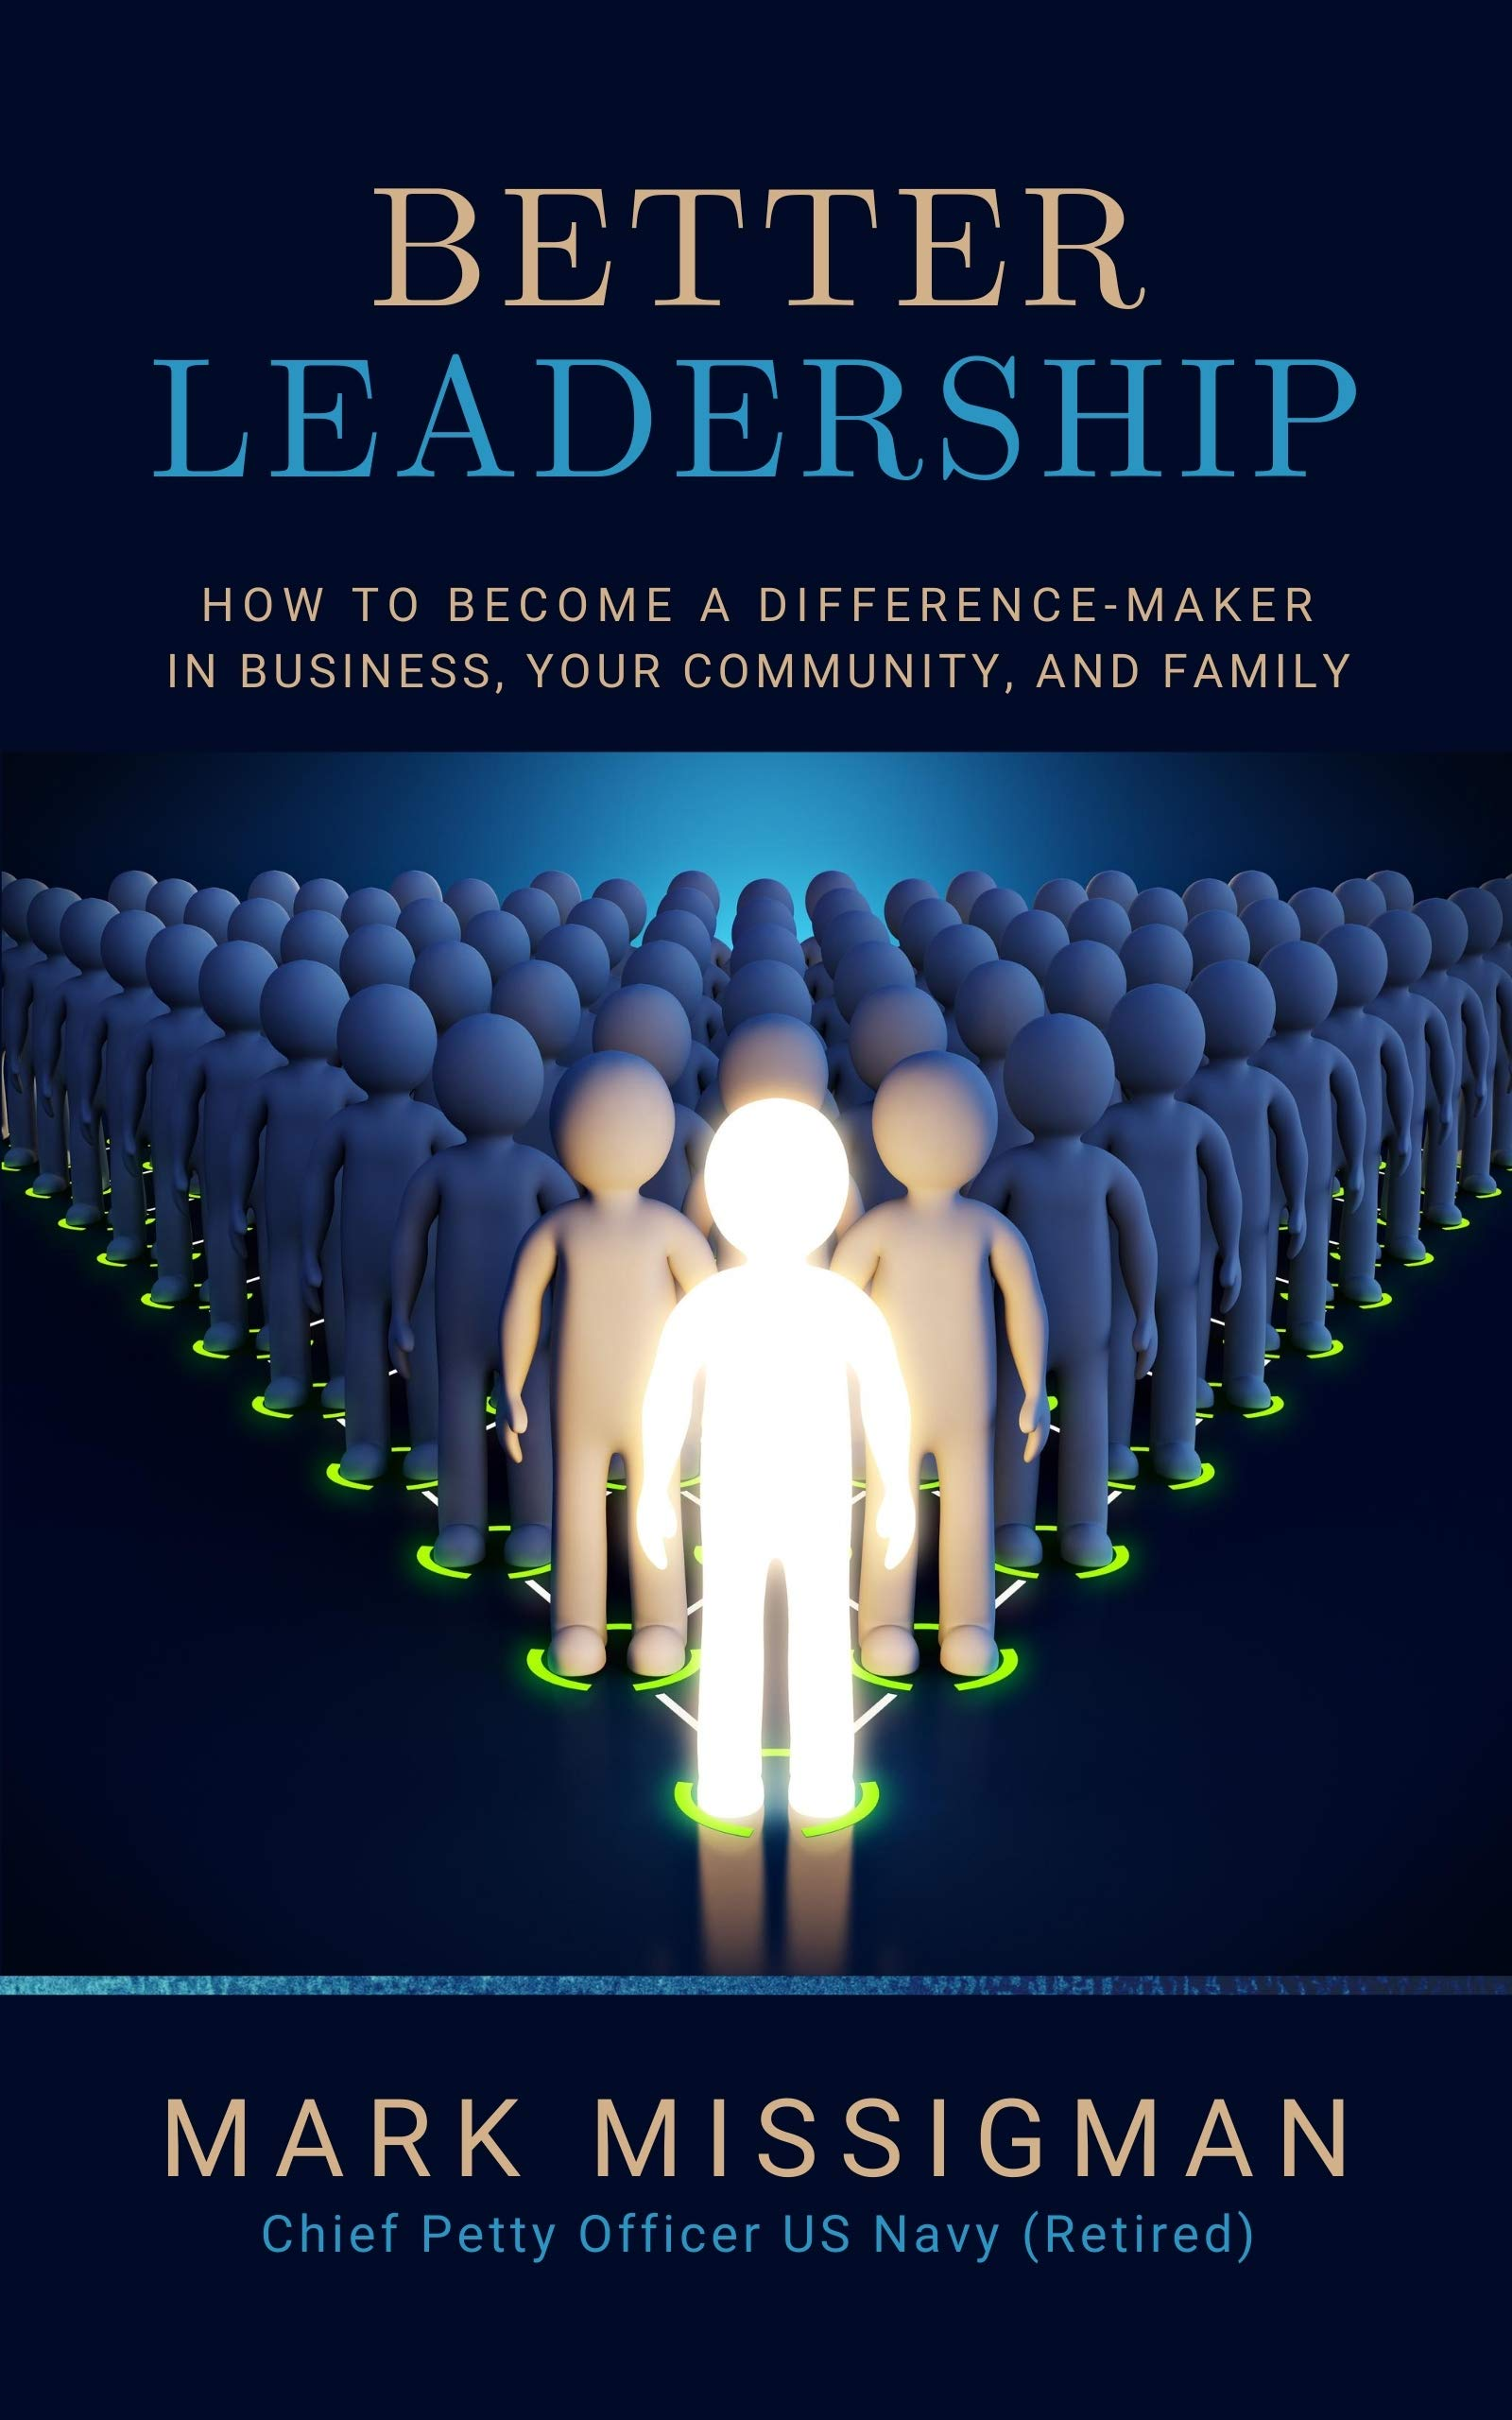 Better Leadership : How to become a Difference-Maker in Business, your Community, and Family